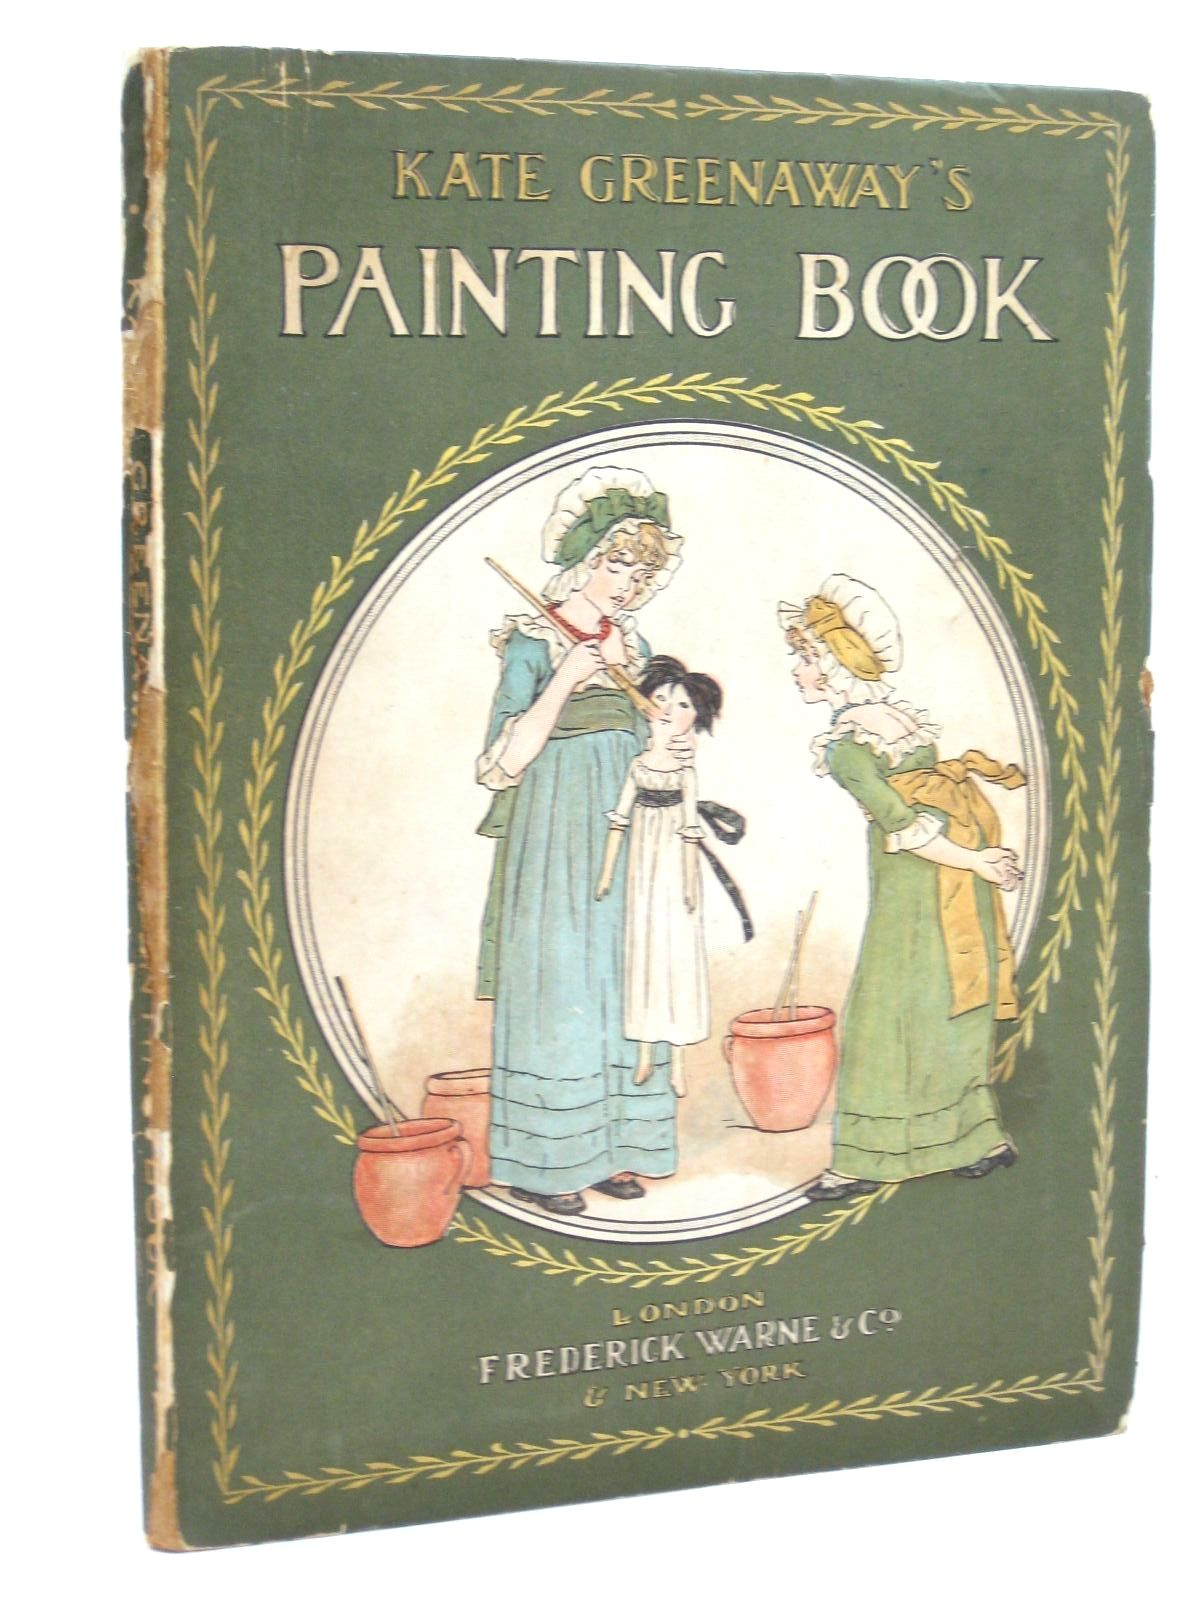 Photo of KATE GREENAWAY'S PAINTING BOOK written by Greenaway, Kate illustrated by Greenaway, Kate published by Frederick Warne & Co. (STOCK CODE: 1316434)  for sale by Stella & Rose's Books